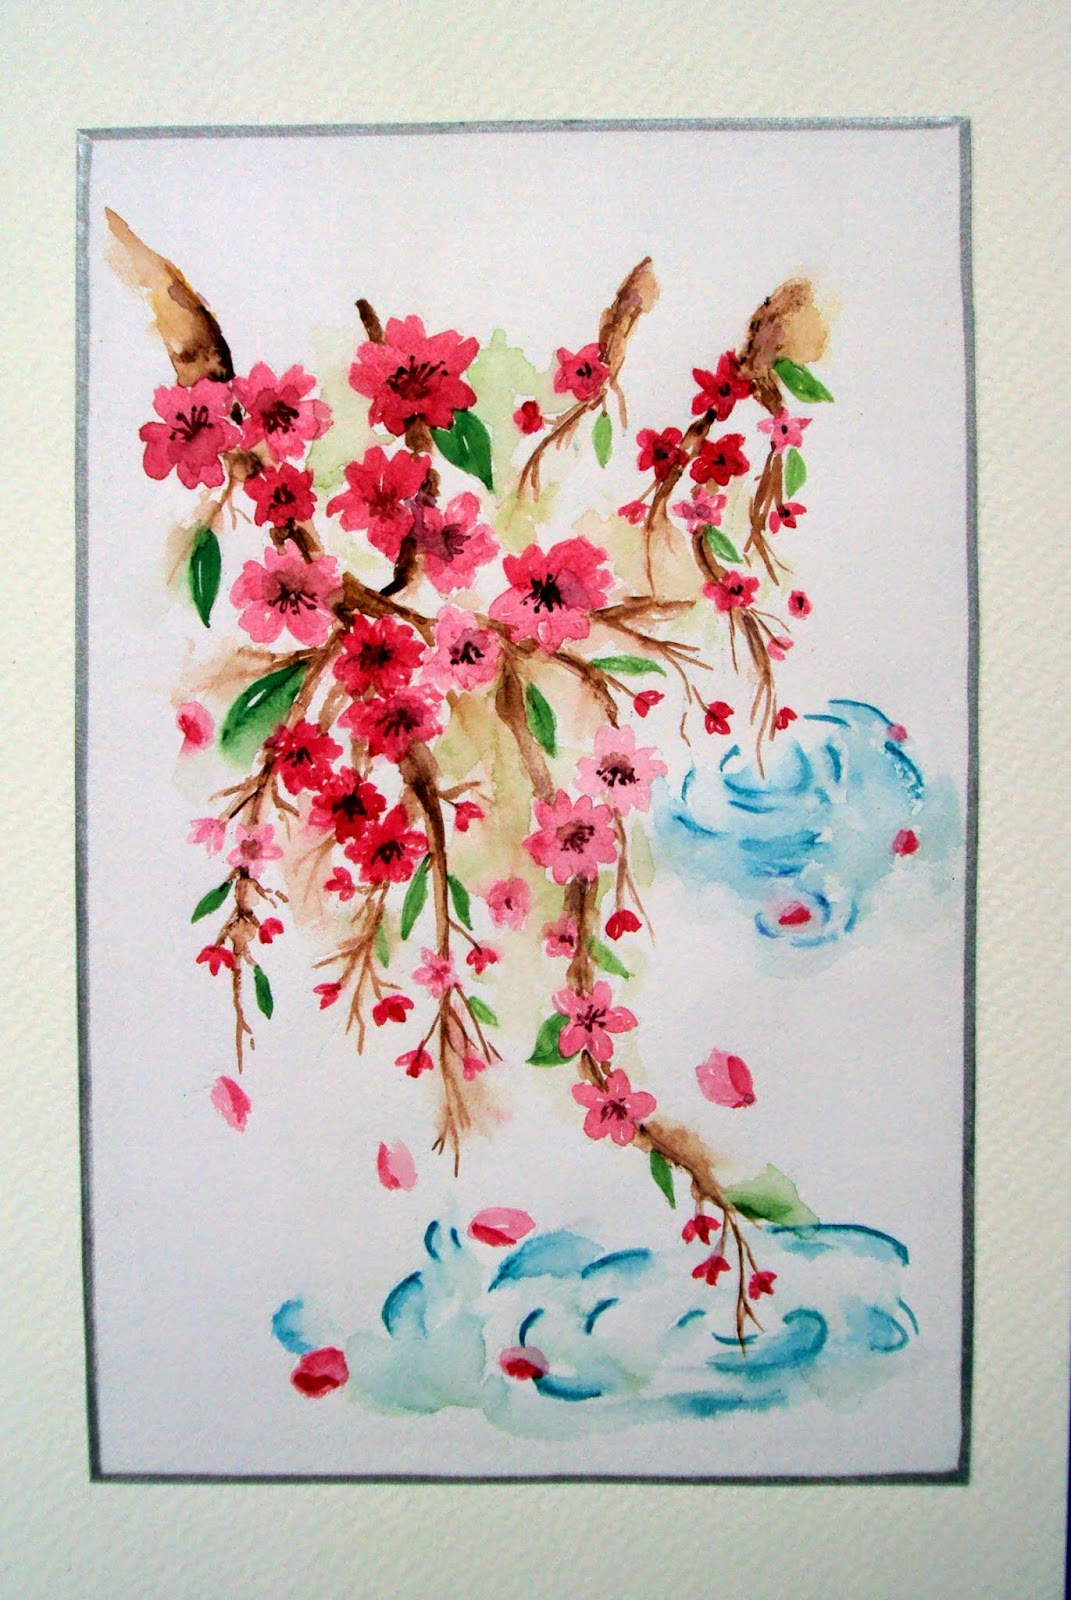 blossoms, flowers, pink, hanging, branches, art, handpainted, watercolour